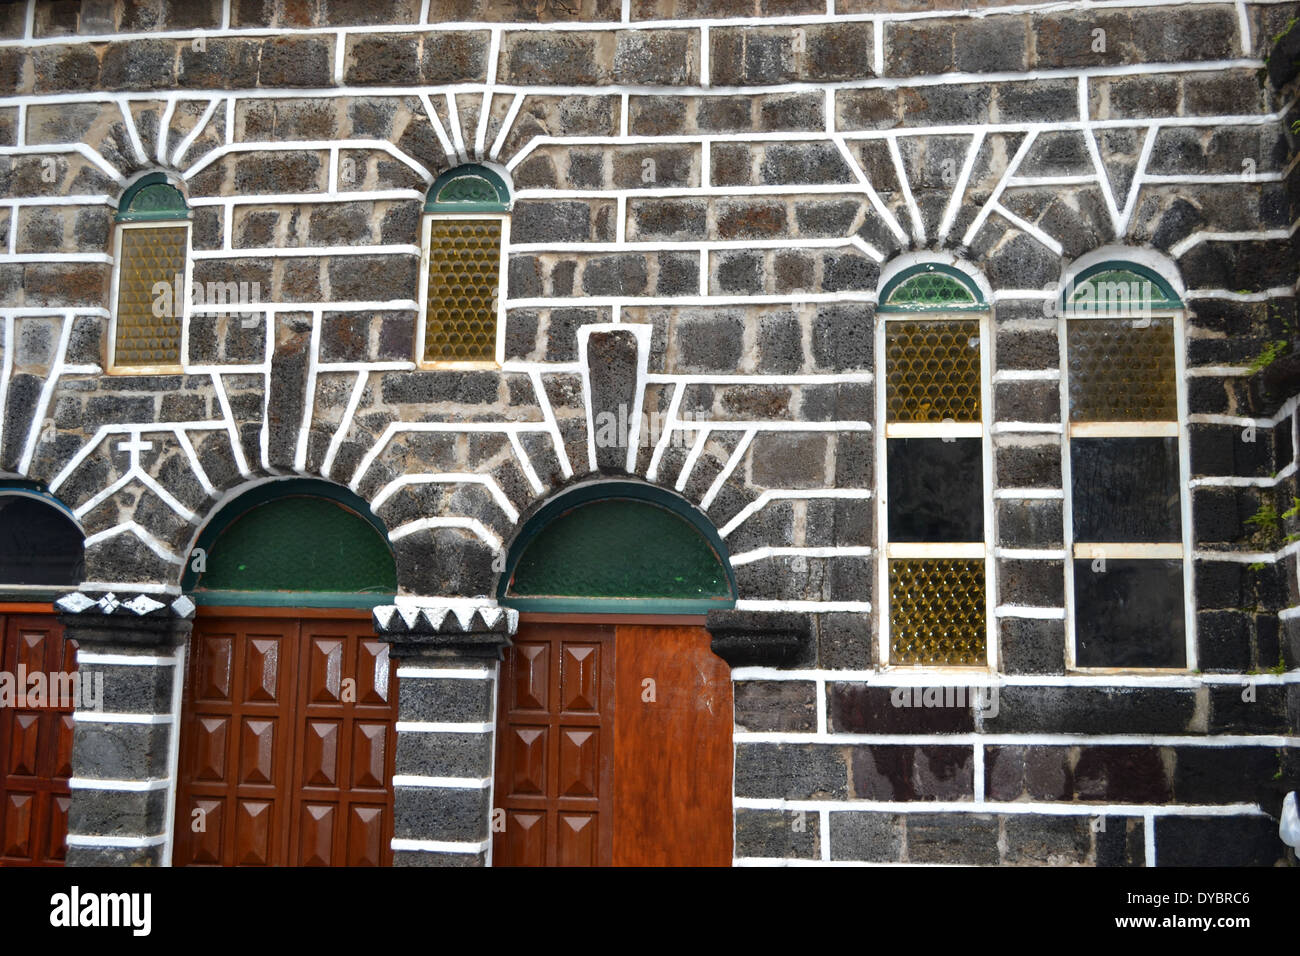 Architecture detail of Our Lady of Good Hope Cathedral in downtown Matautu, Wallis Island, Wallis and Futuna, Melanesia - Stock Image